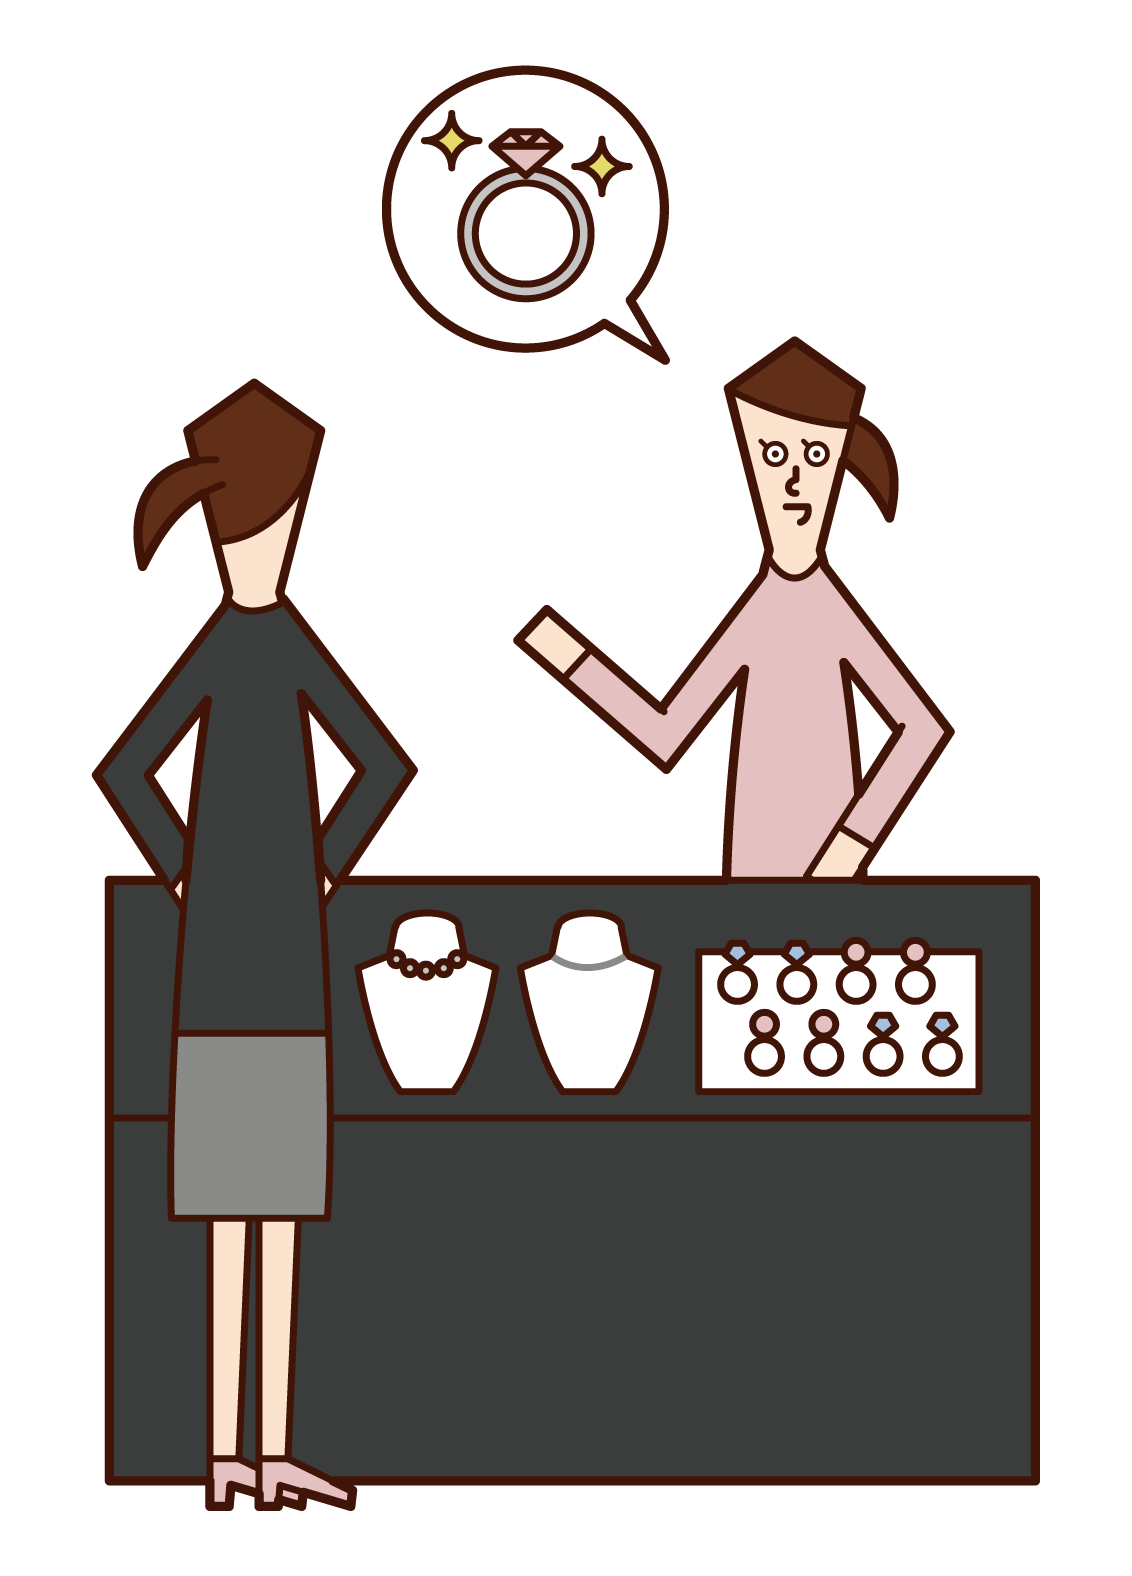 Illustration of a woman buying a ring at a jewelry store